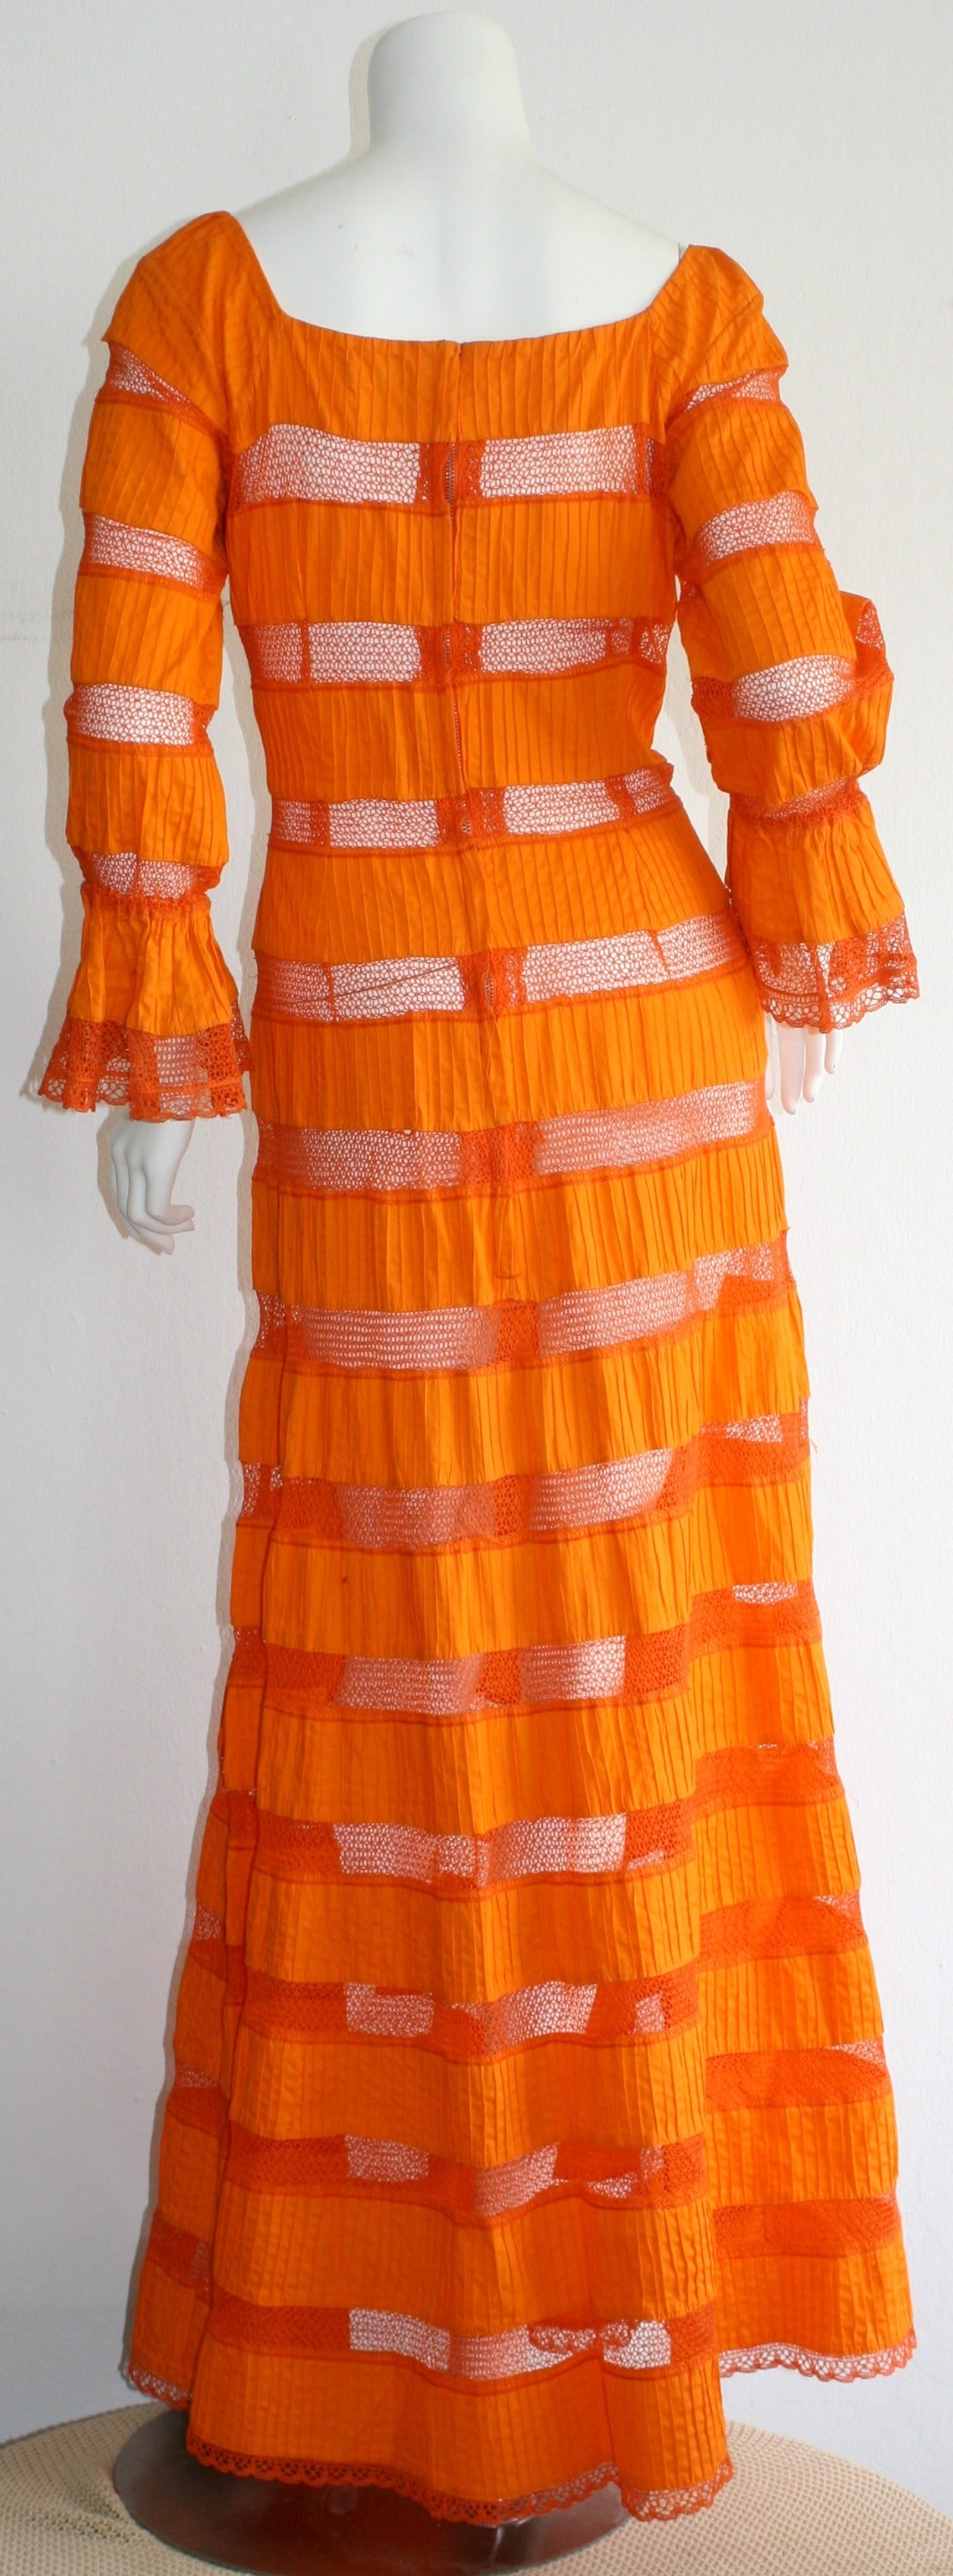 Tachi Castillo Vintage 1970s Orange Cotton Crochet Mexican Maxi Dress 3